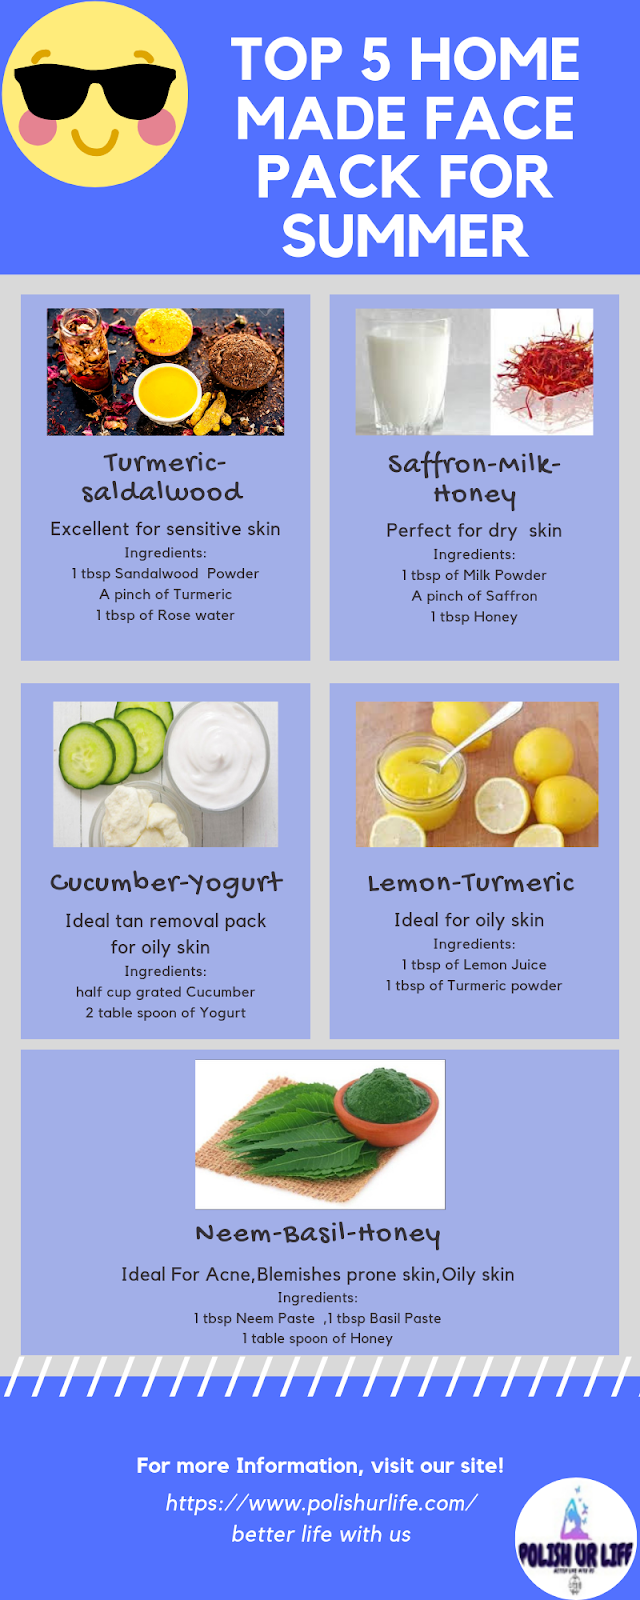 Top 5 Home Made Face Pack For Summer